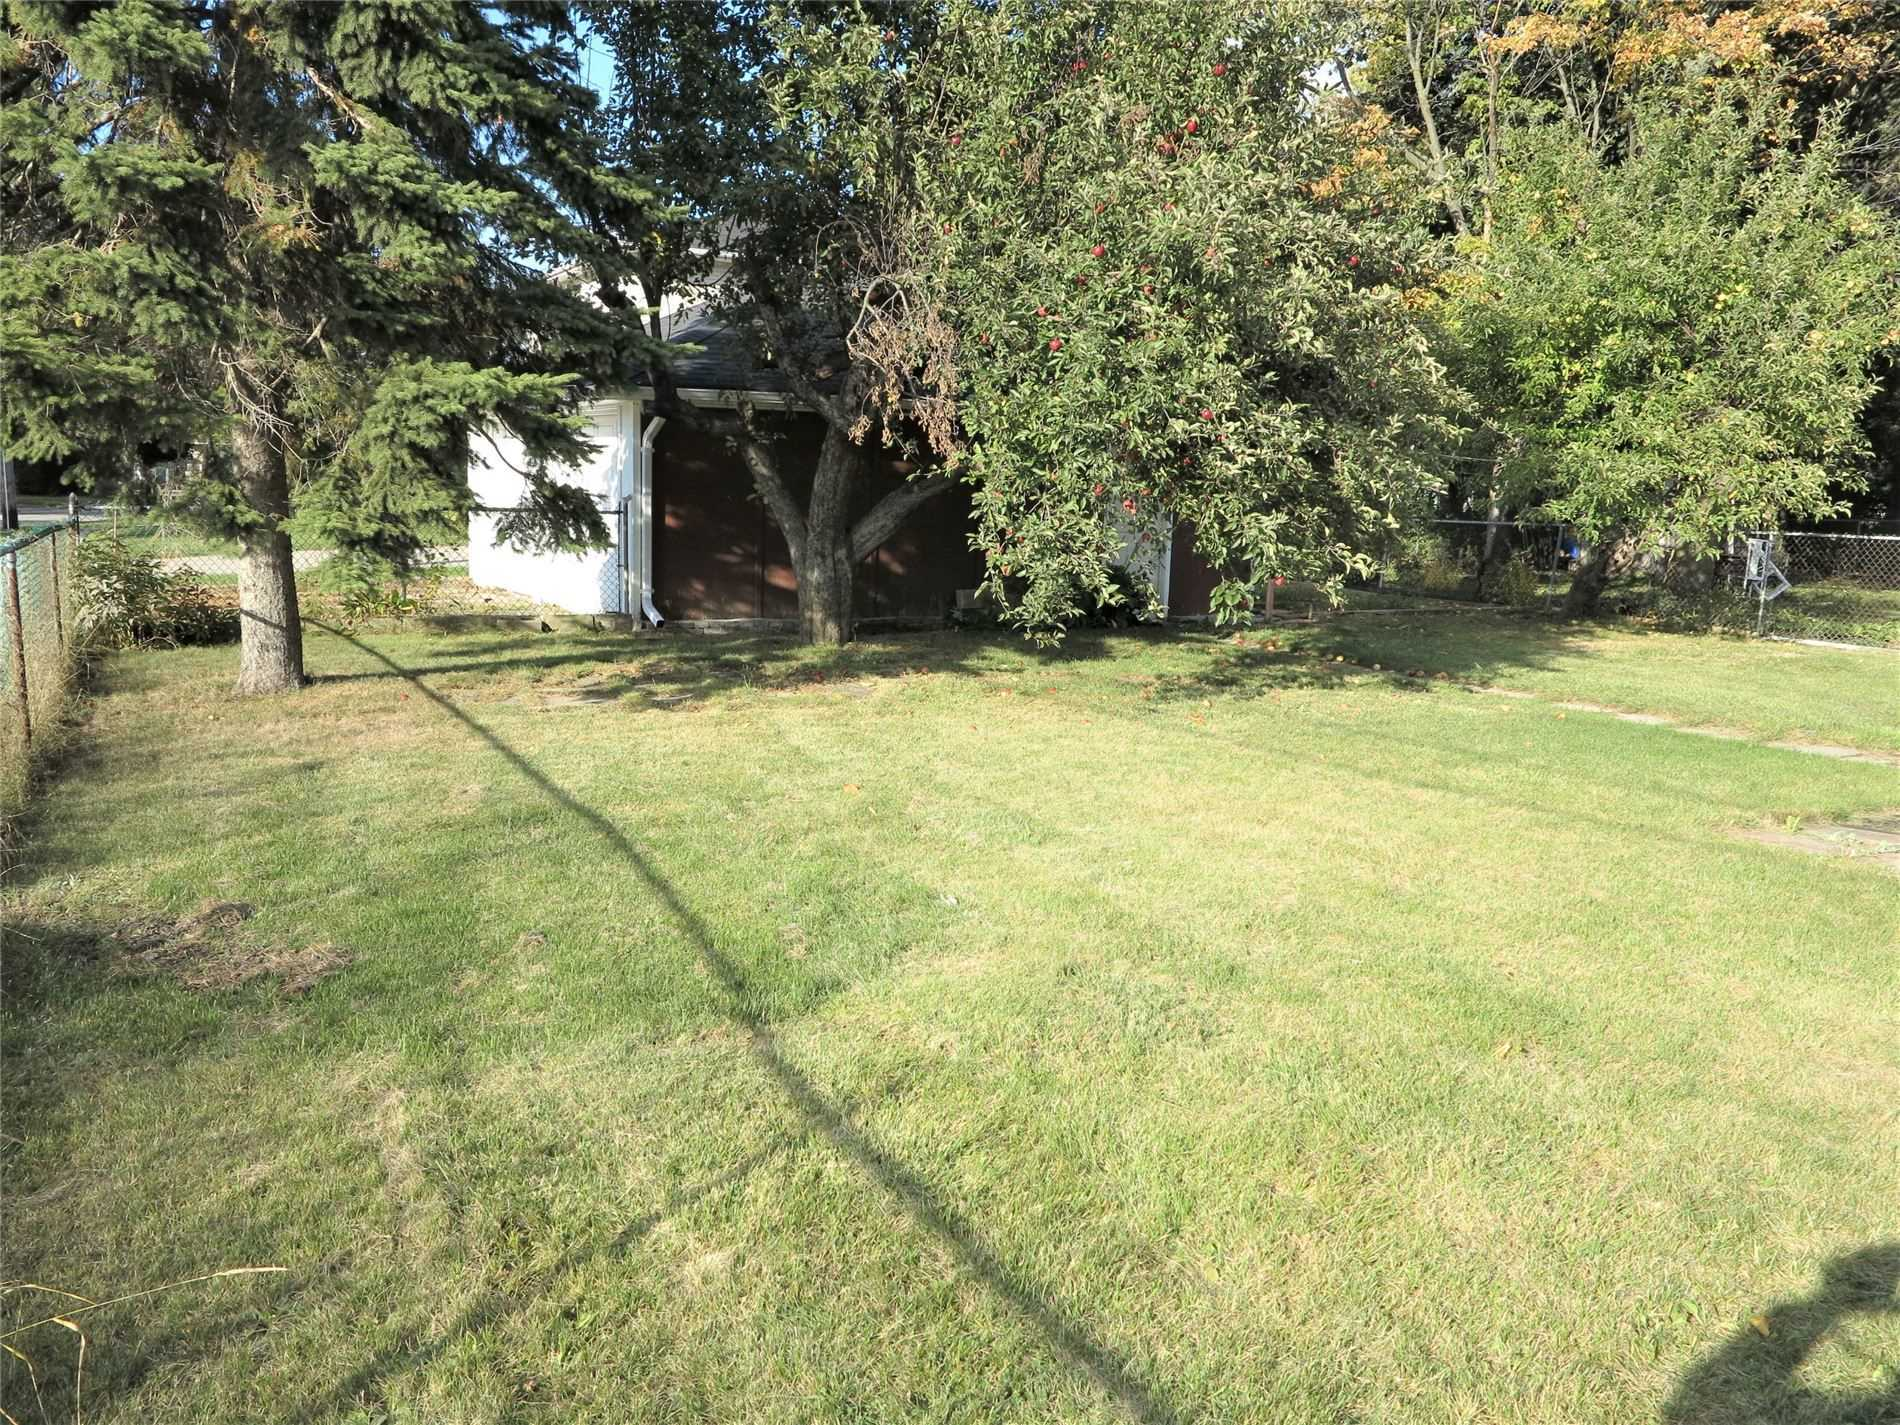 Image 17 of 30 showing inside of 3 Bedroom Detached Bungalow for Lease at 456 Drewry Ave, Toronto M2R2K7